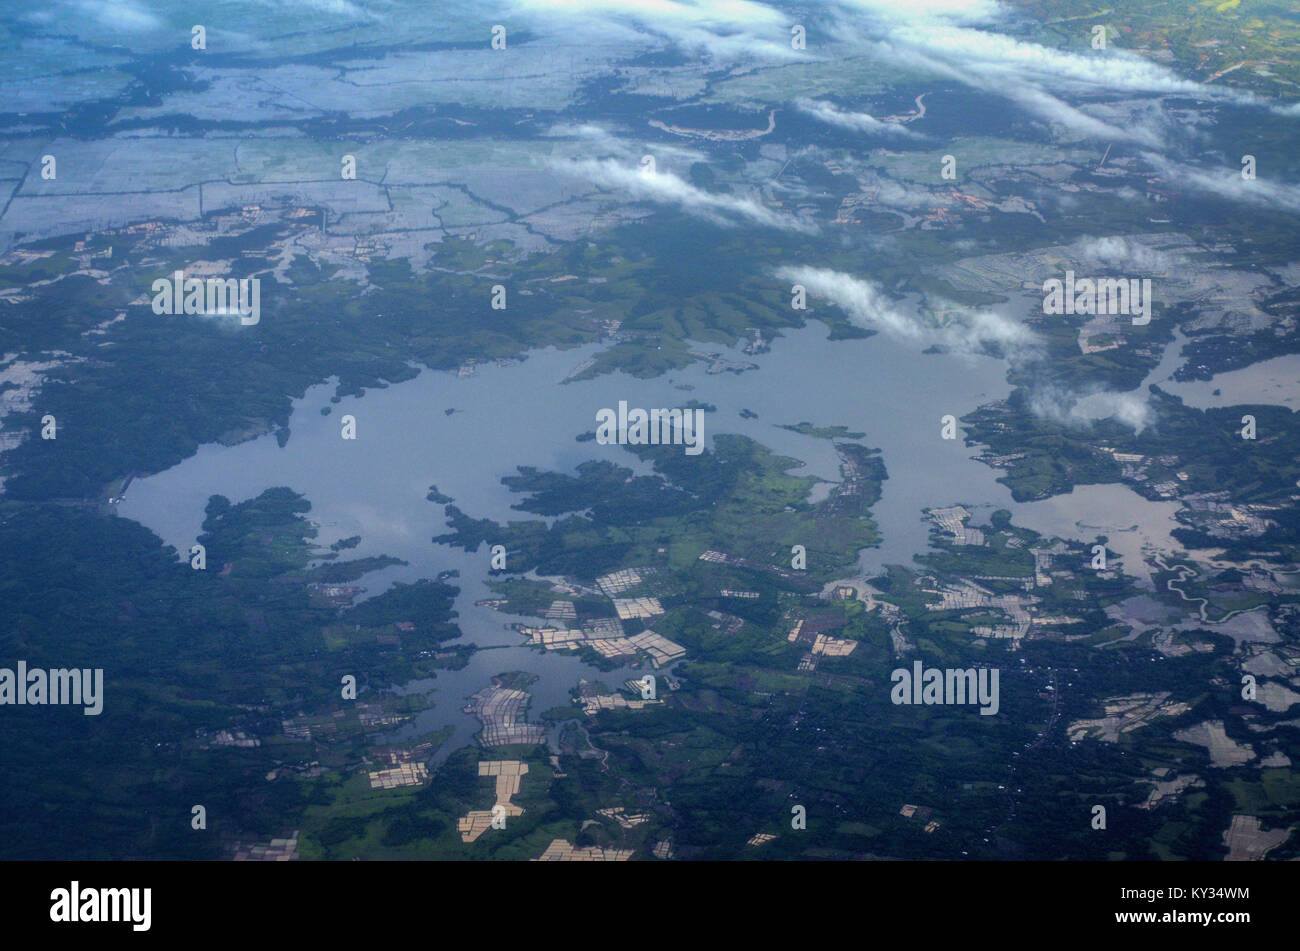 Lake Tempe (danau Tempe) during dry seaon as seen from airplane window. - Stock Image